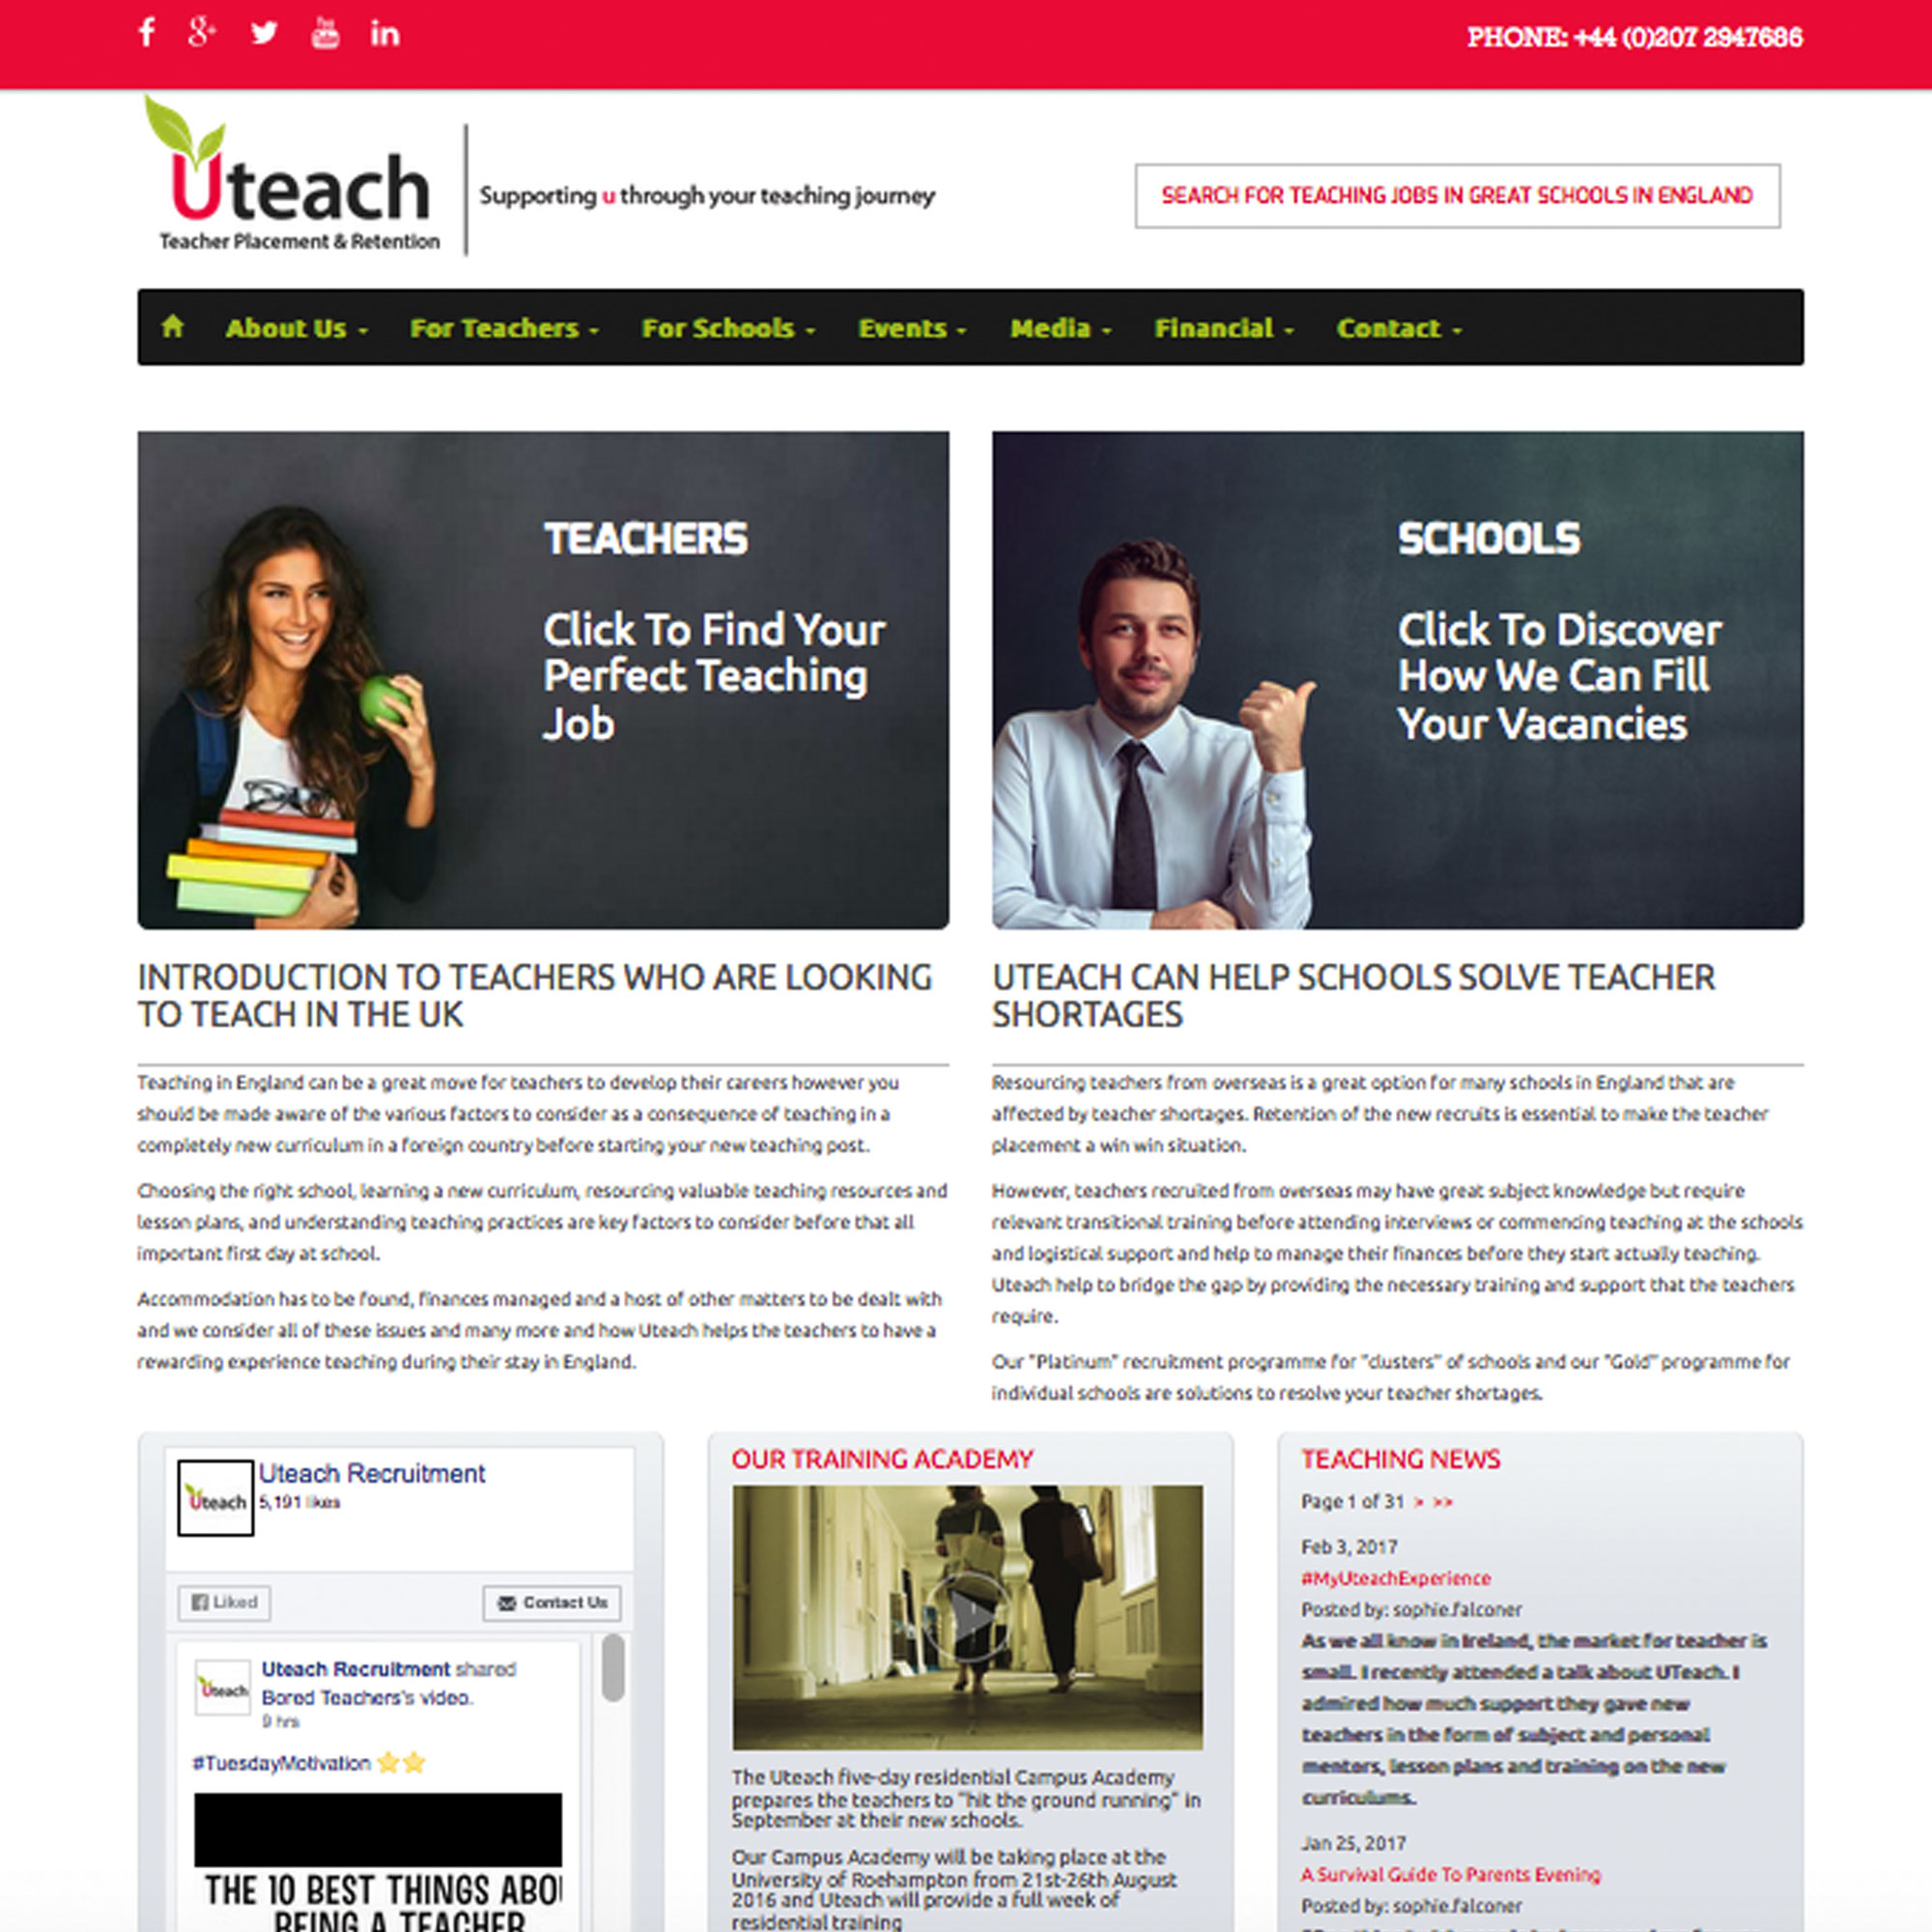 Uteach Recruitment